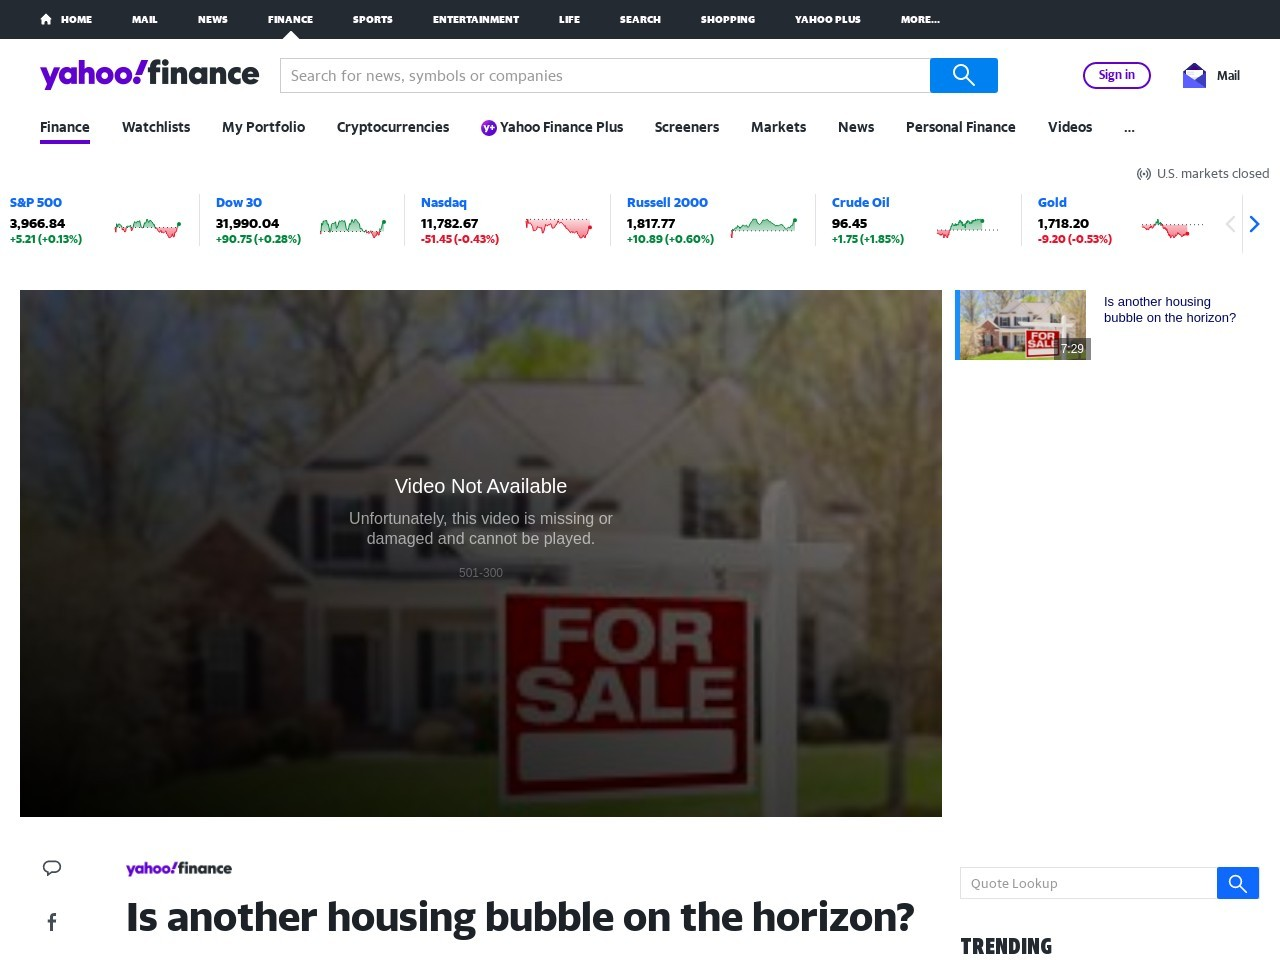 Is another housing bubble on the horizon? – Yahoo Finance